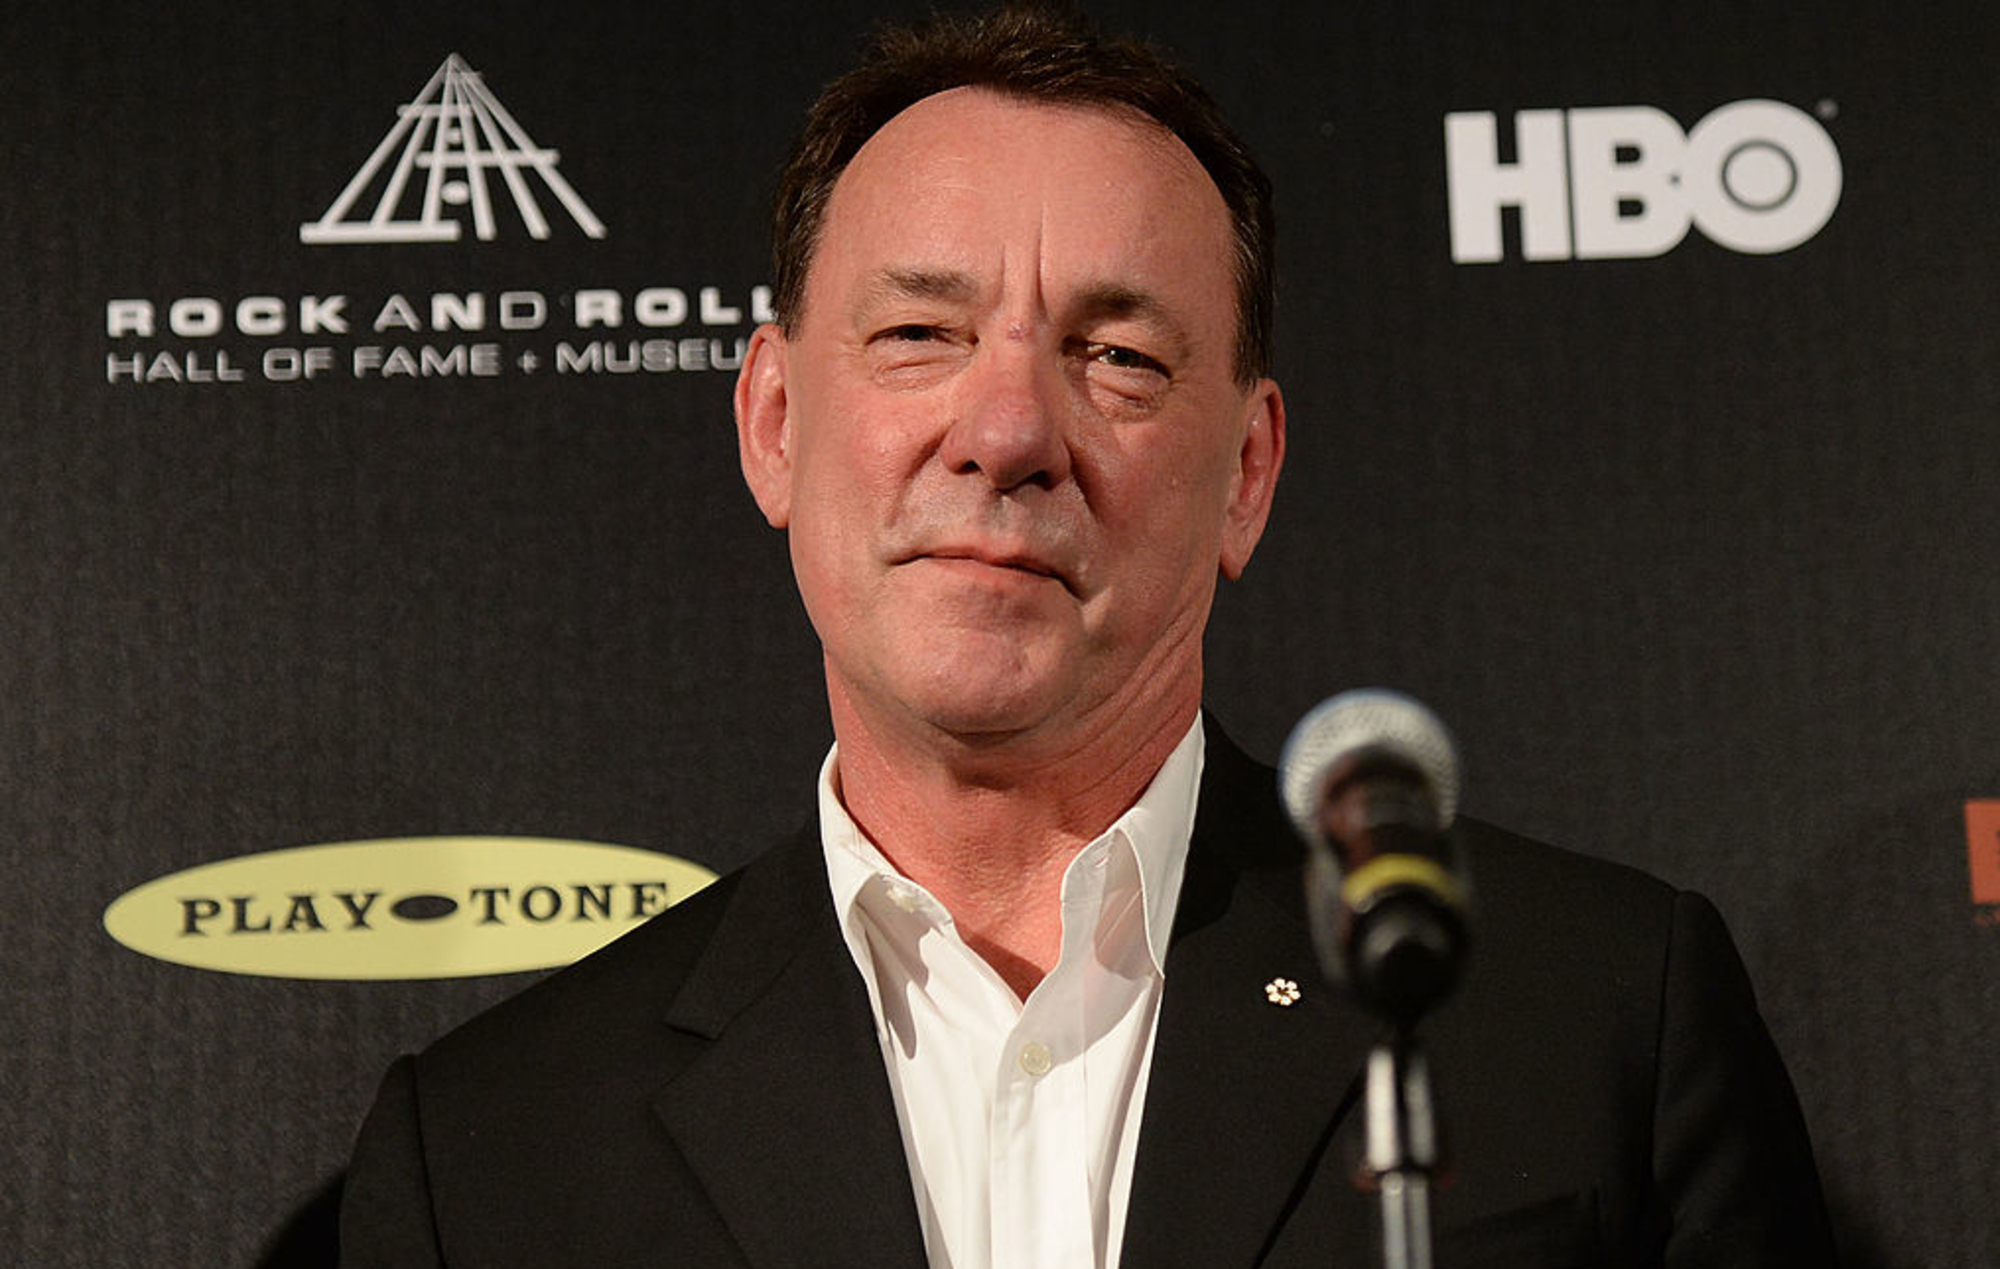 Rush: Friend of band says rumours surrounding Neil Peart's final months are inaccurate